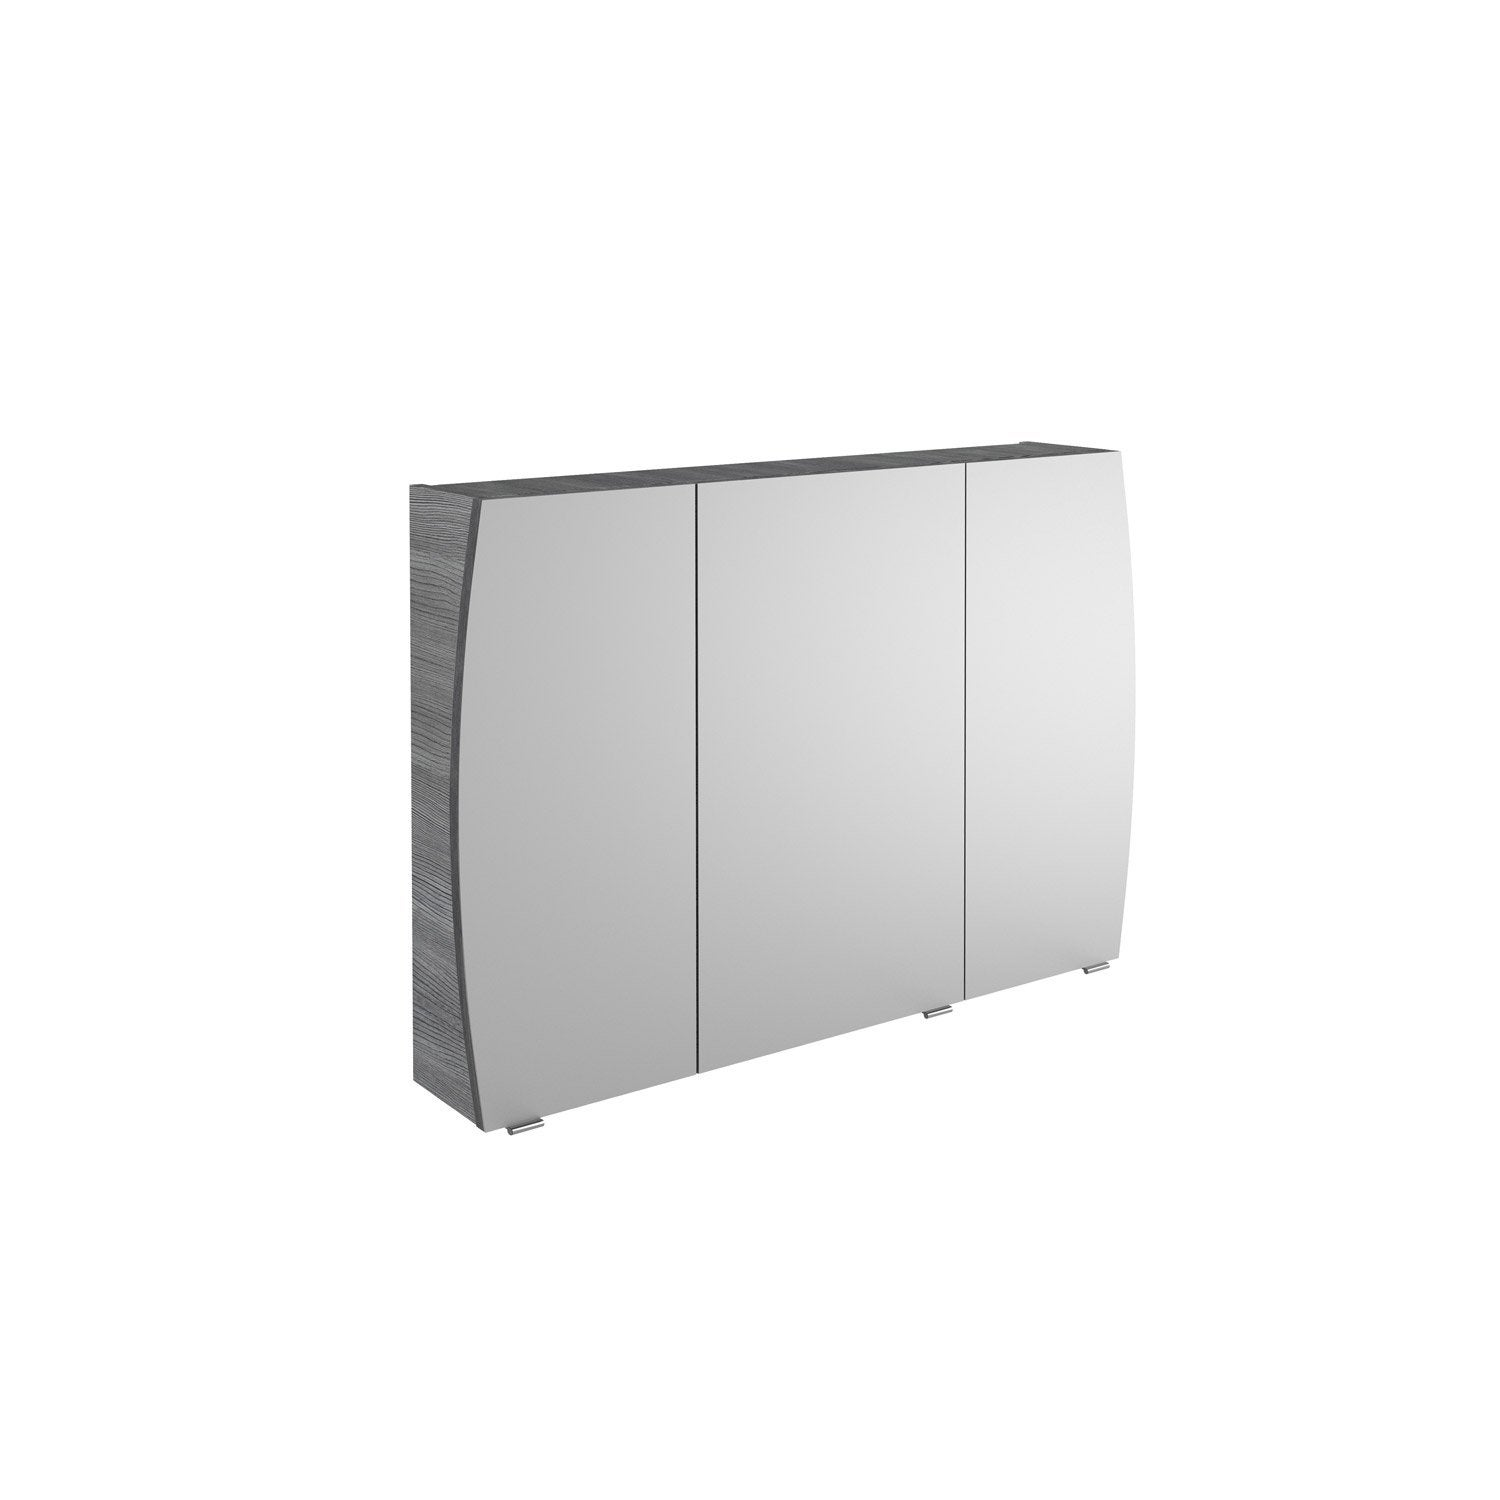 armoire de toilette l 100 cm gris structur image. Black Bedroom Furniture Sets. Home Design Ideas